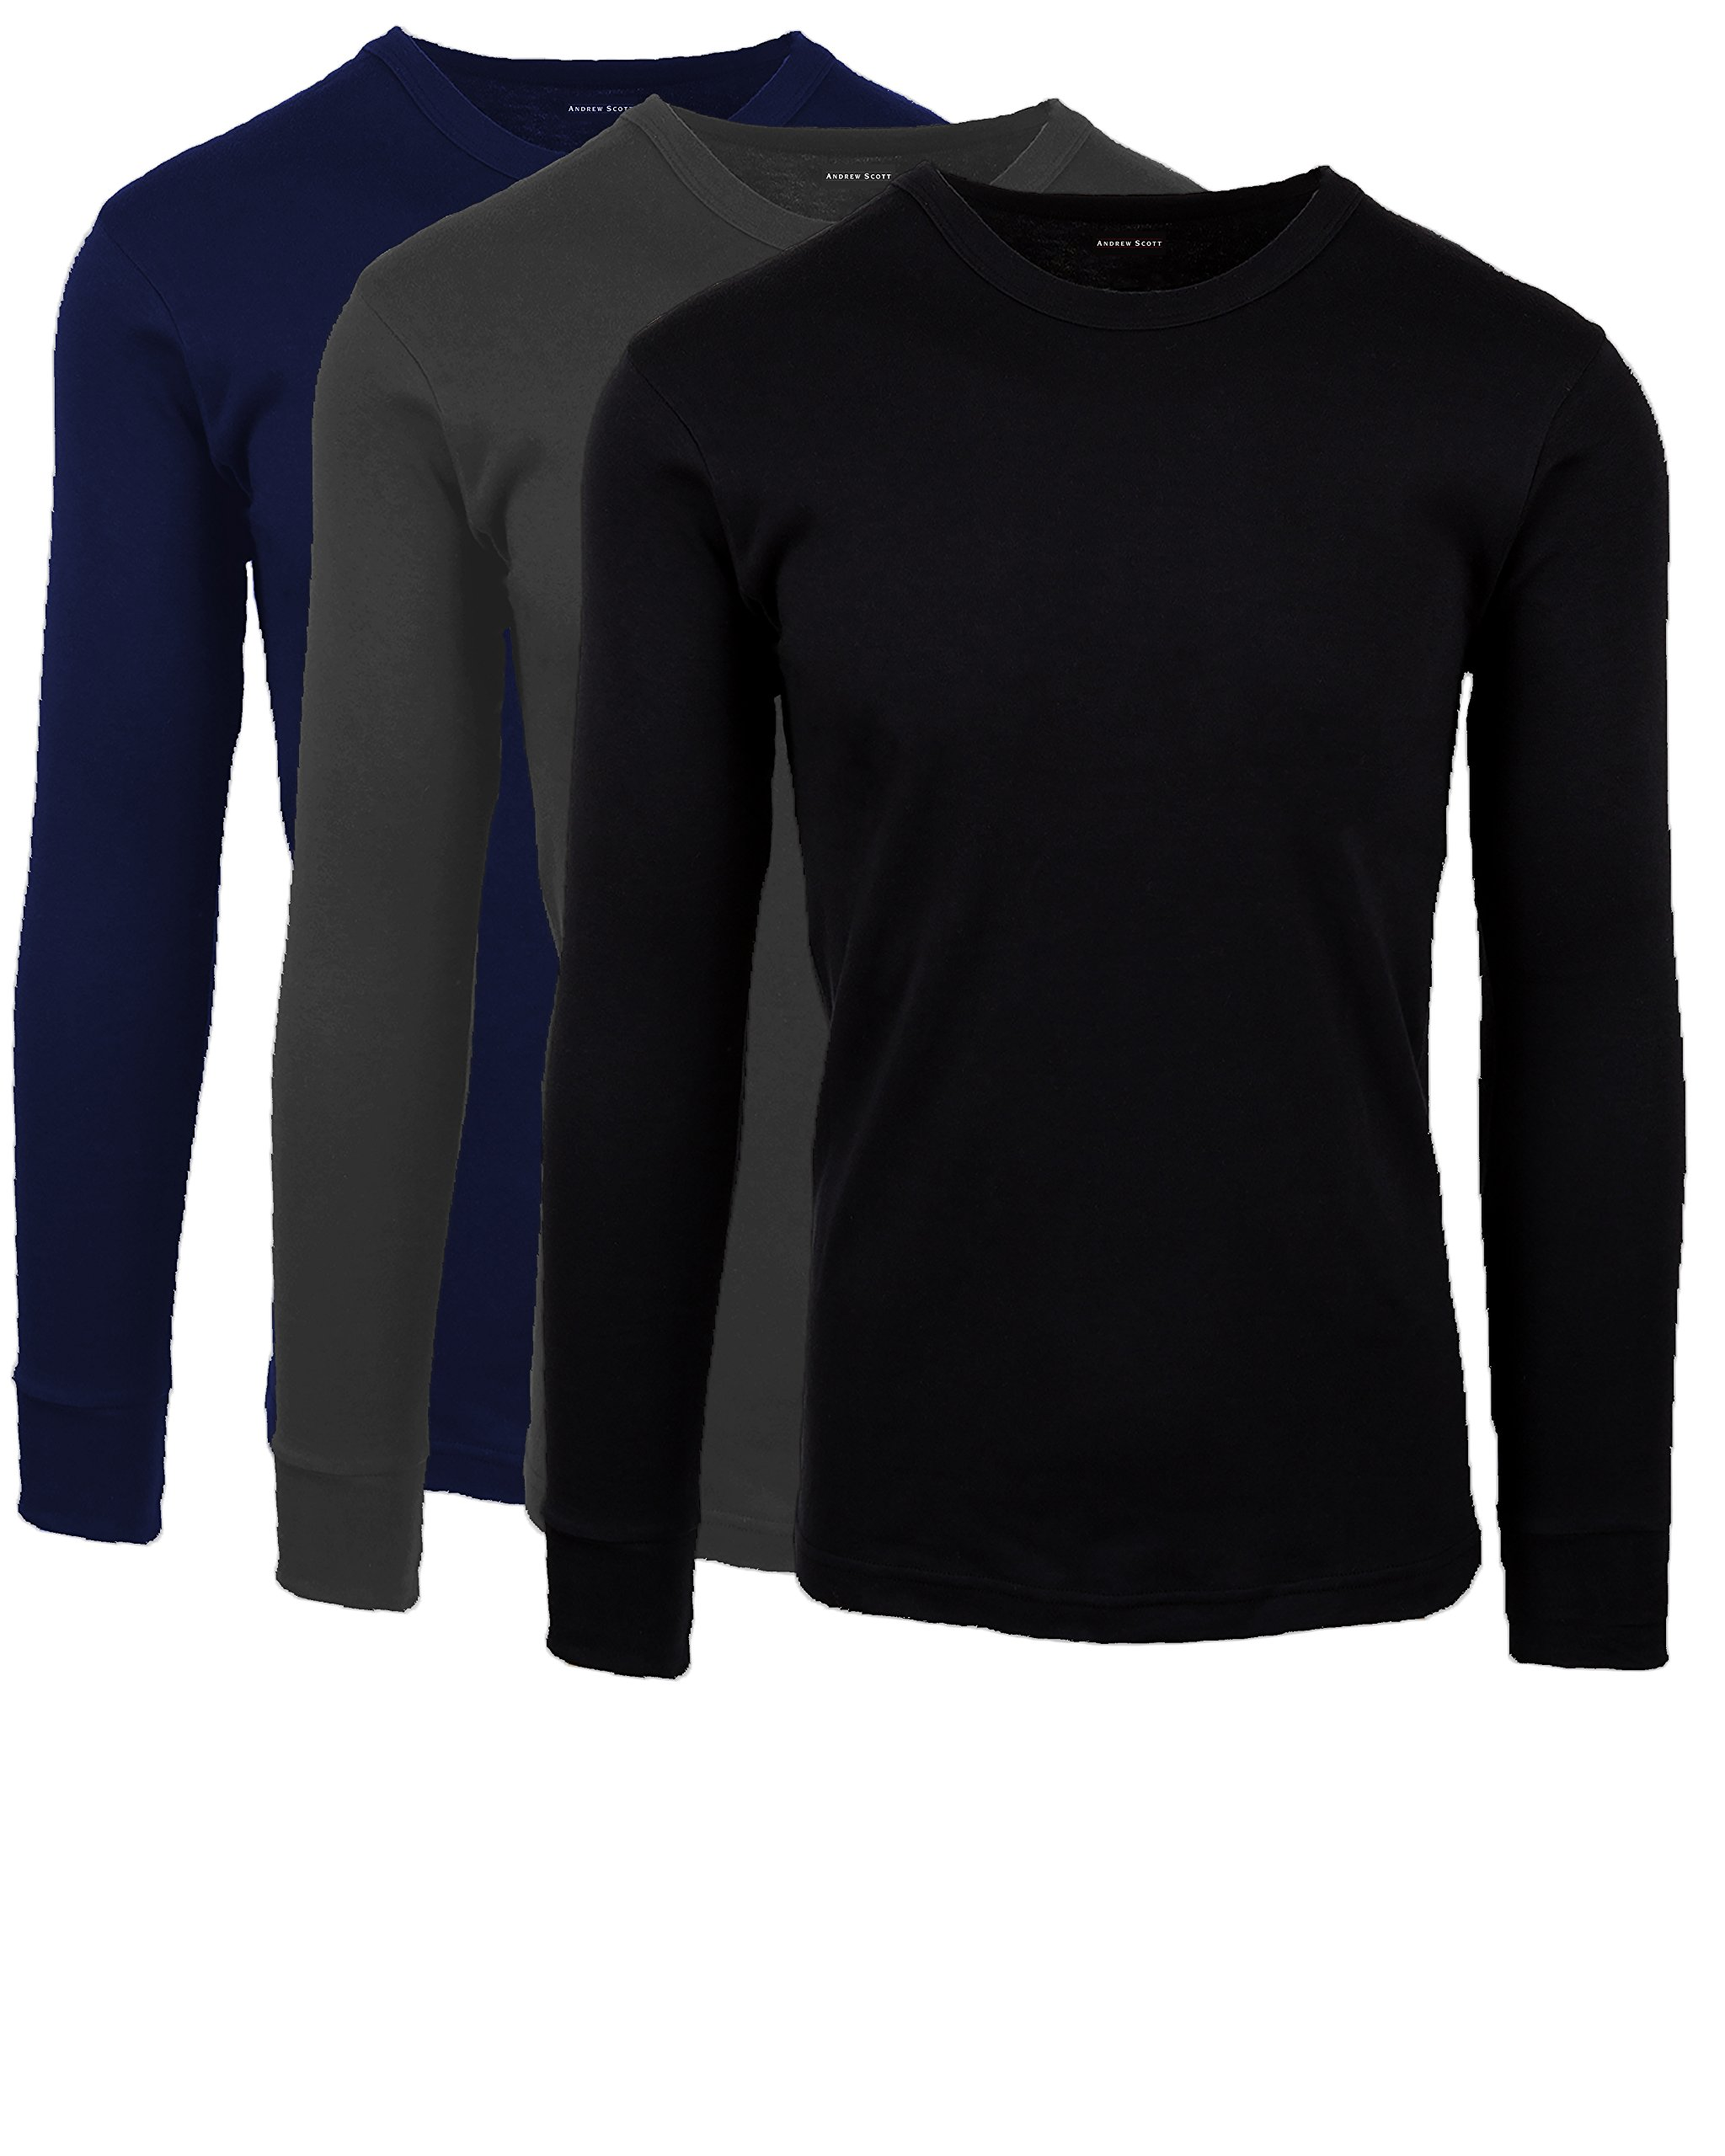 Andrew Scott Men's 3 Pack Premium Cotton Thermal Top Base Layer Long Sleeve Crew Neck Shirt (Large, 3 Pack- Black/Heather Grey/Midnight Navy) by Andrew Scott